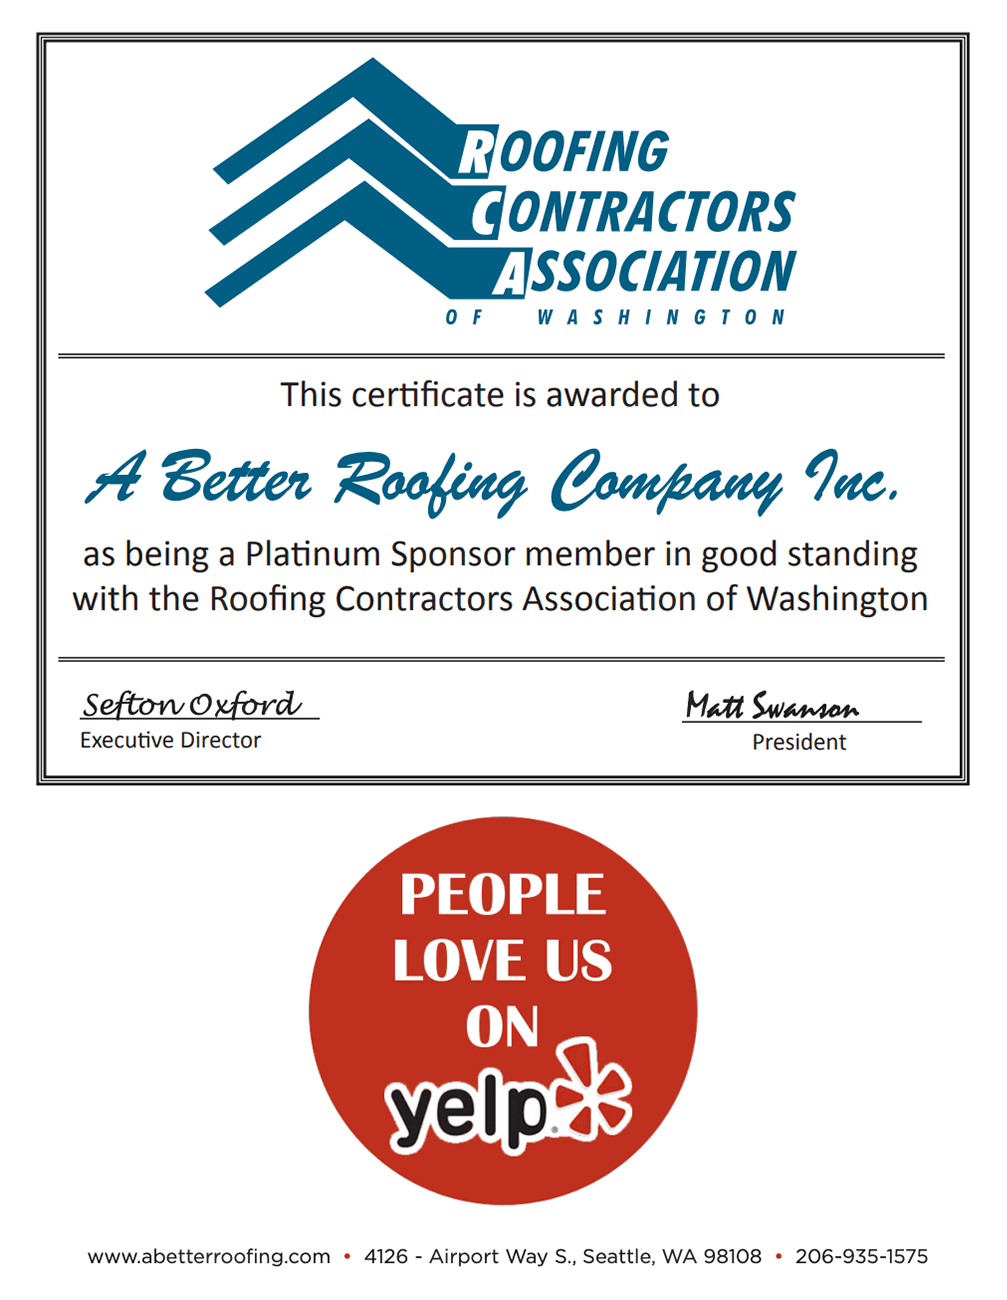 Roofing Contractors Association Certificate